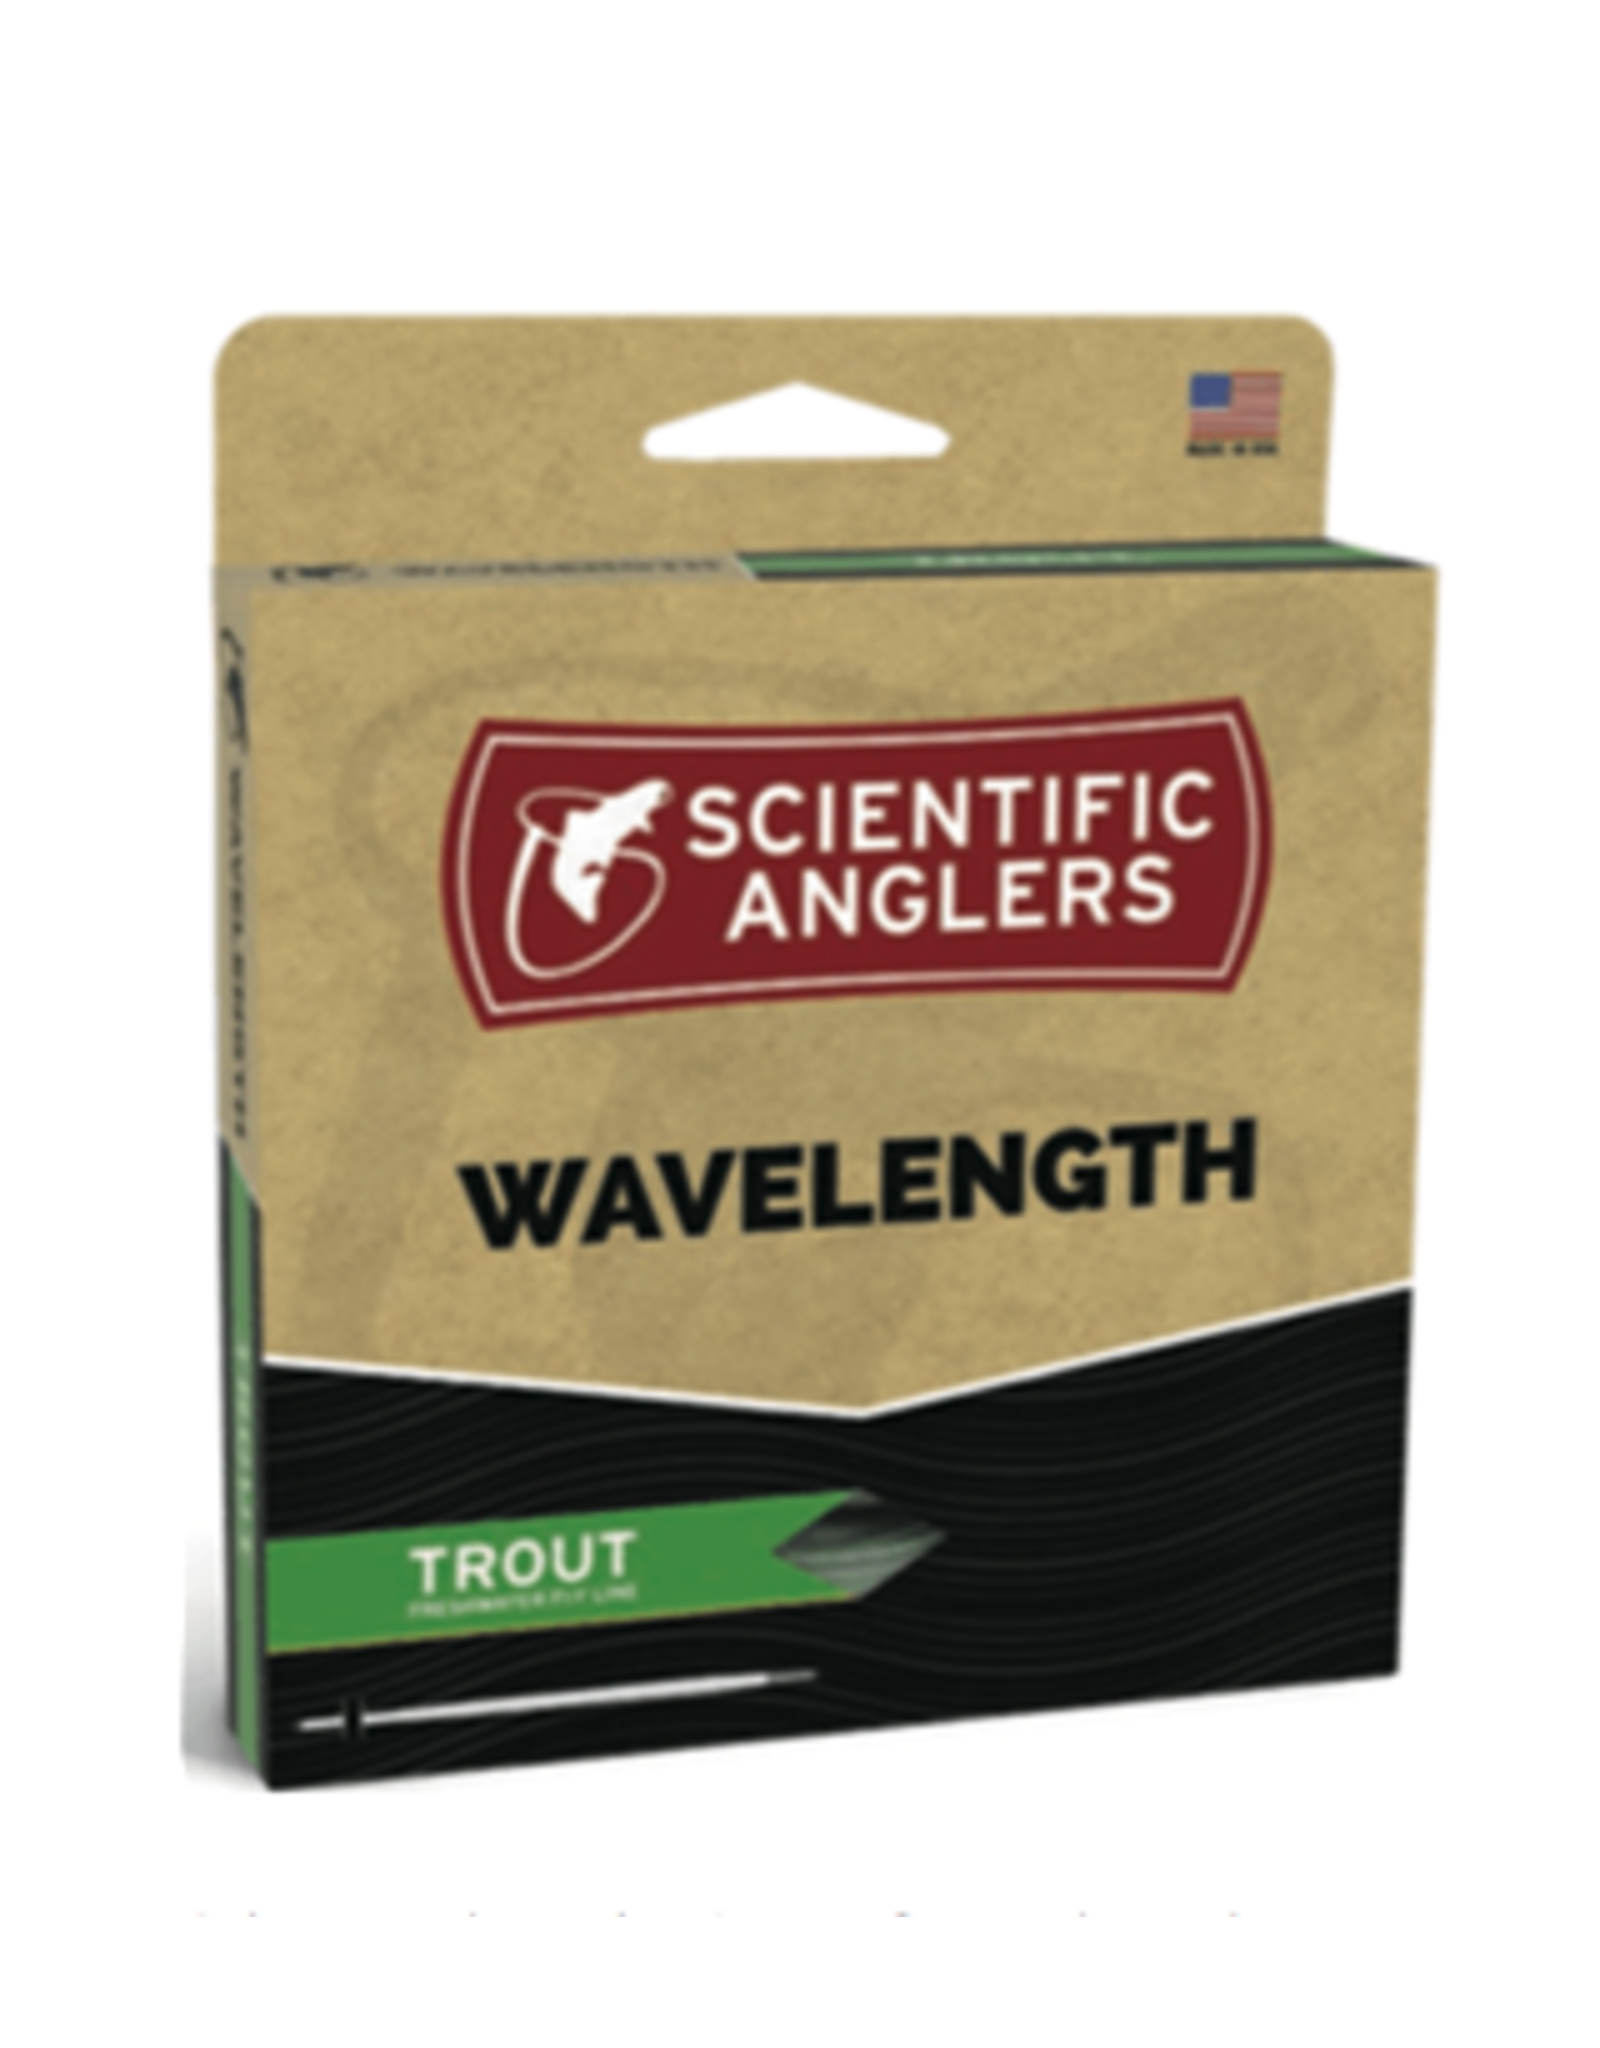 Scientific Anglers Scientific Angler - Wavelength Trout Fly Line